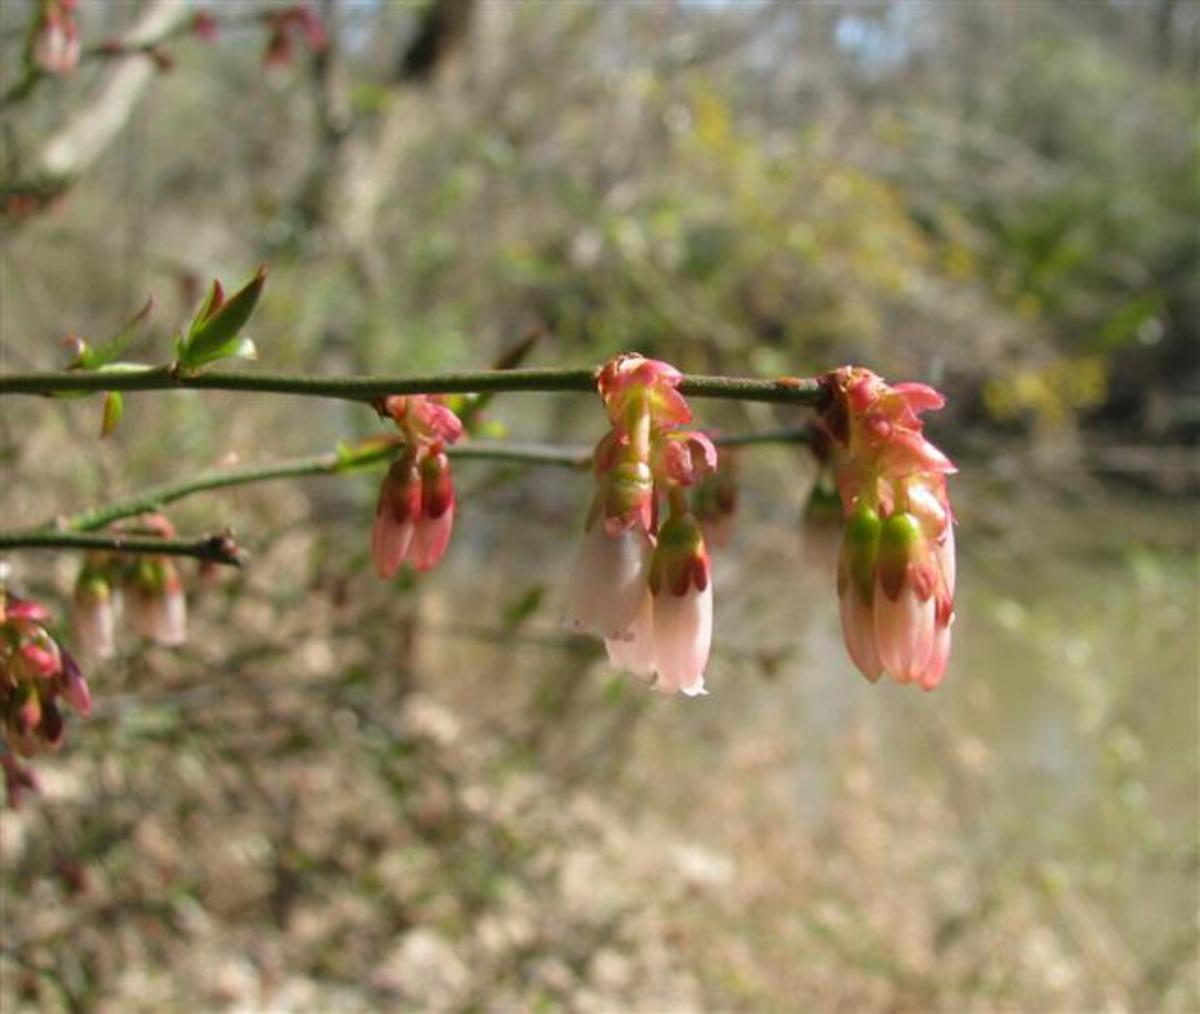 Vaccinium (also called Huckleberry) flowers are quite lovely.